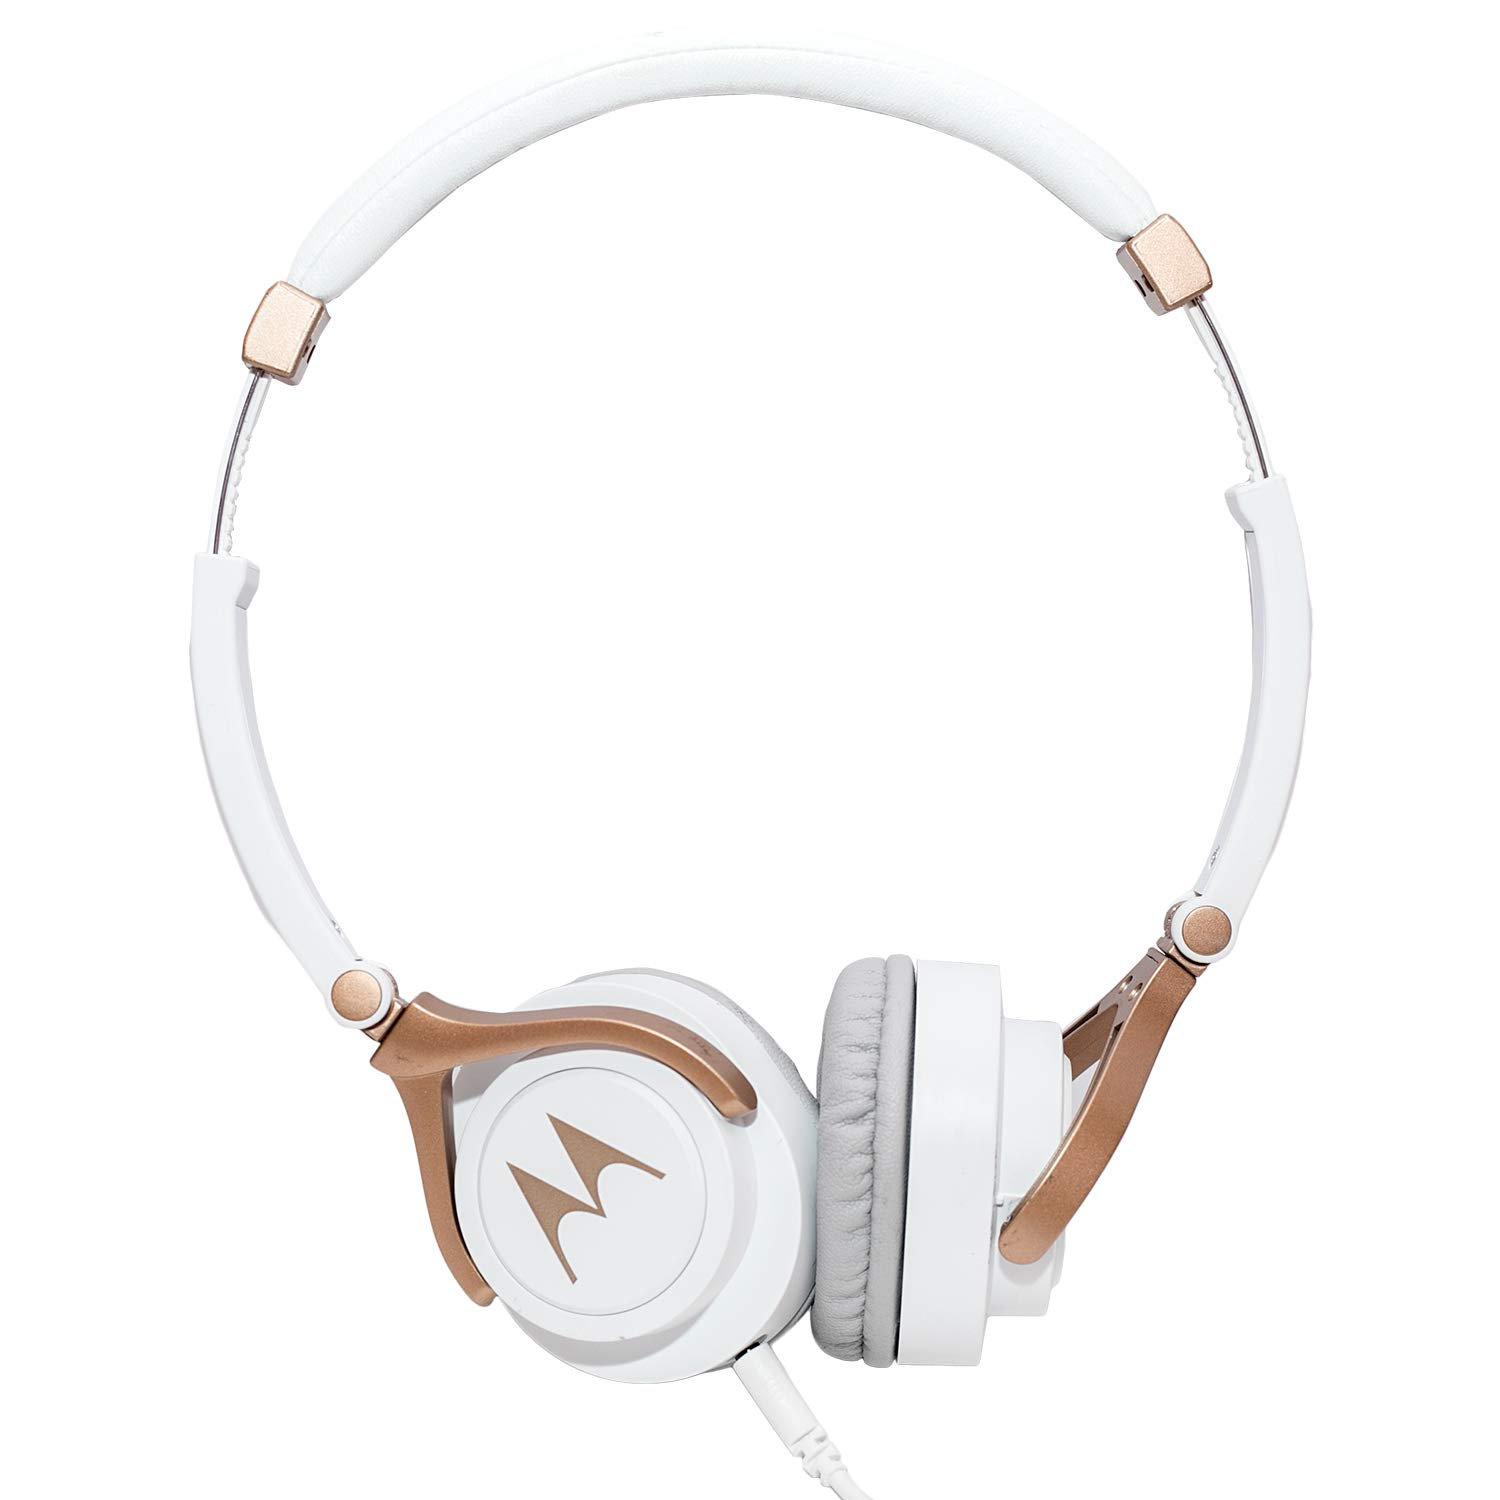 65e96ef0d50e2 Motorola Pulse 3 Wired Headphones (White and Gold)